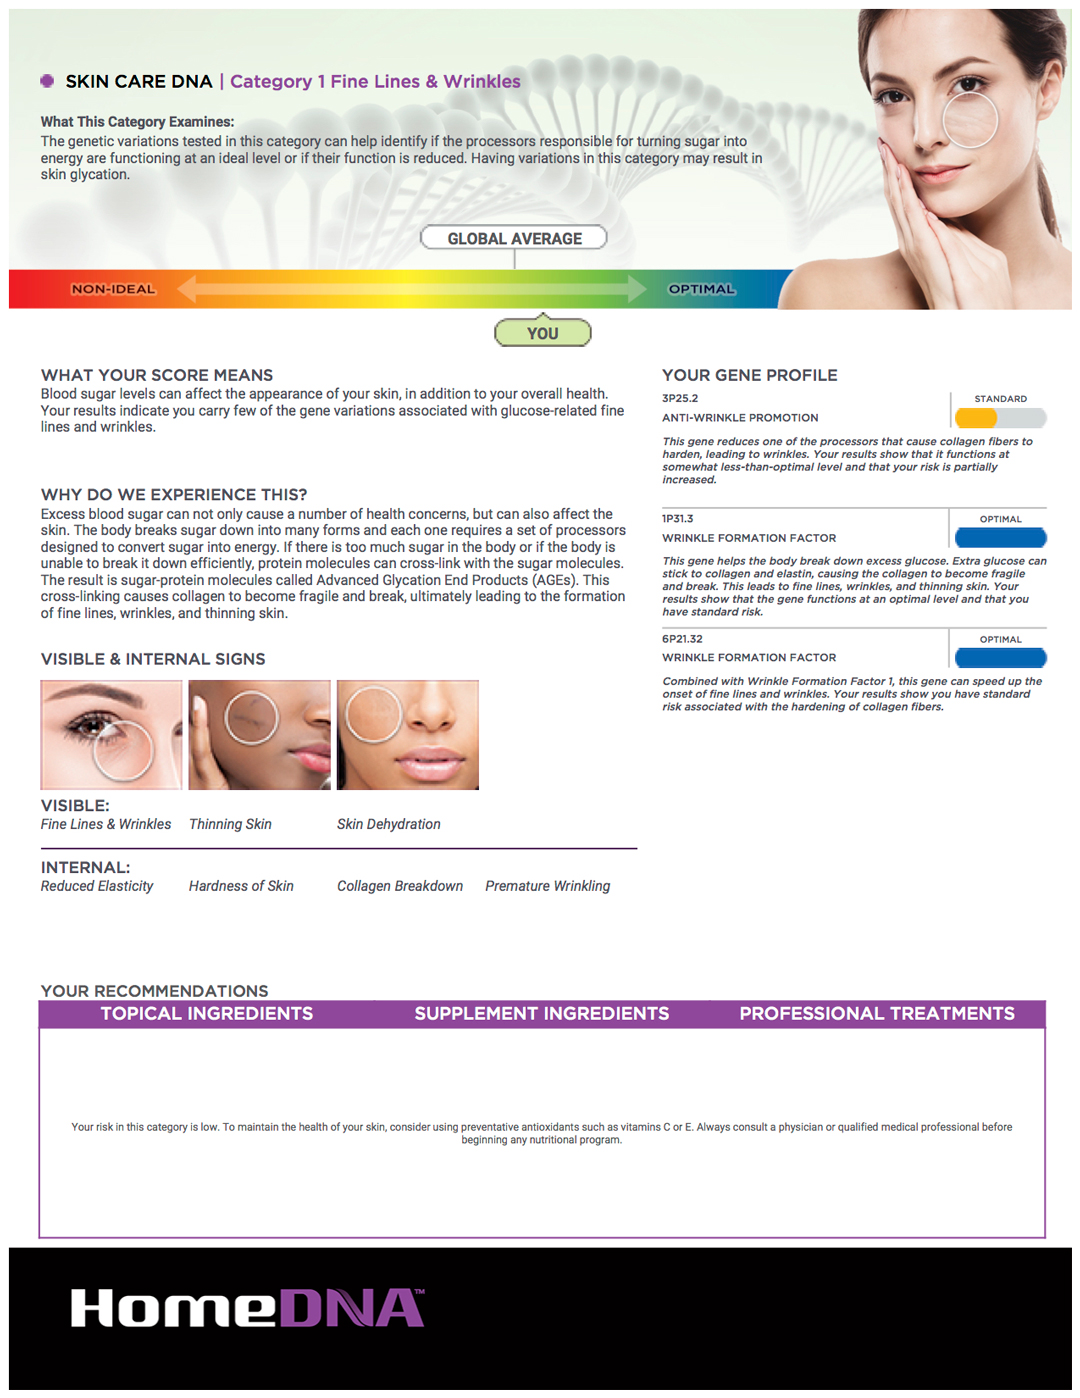 Stop wasting money on beauty products that don't work. The Home DNA skin care test gives you a personalized treatment plan to achieve your best skin!